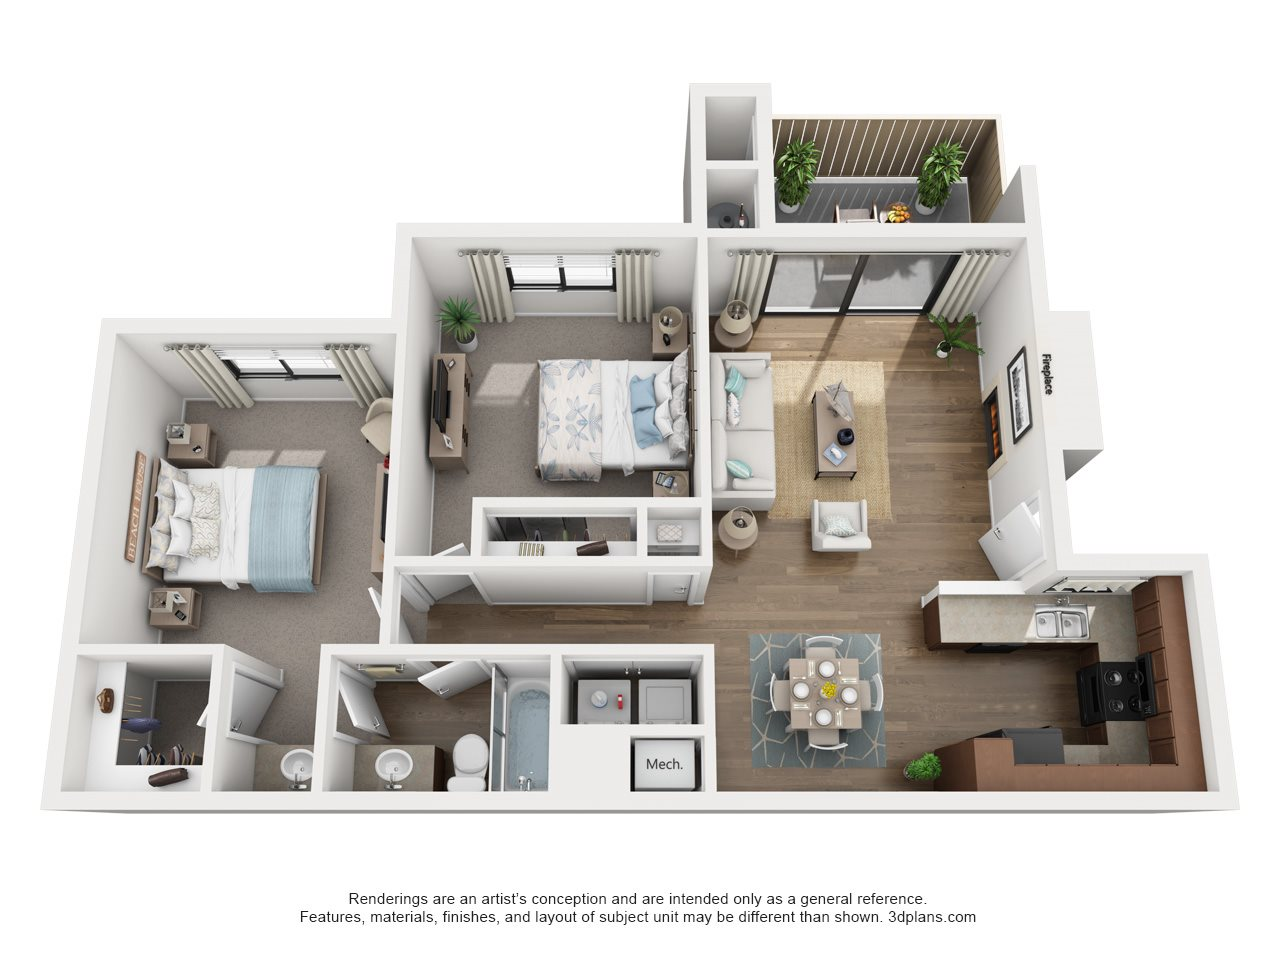 2 Bedroom, 1.25 Bath, Downstairs Floor Plan 5